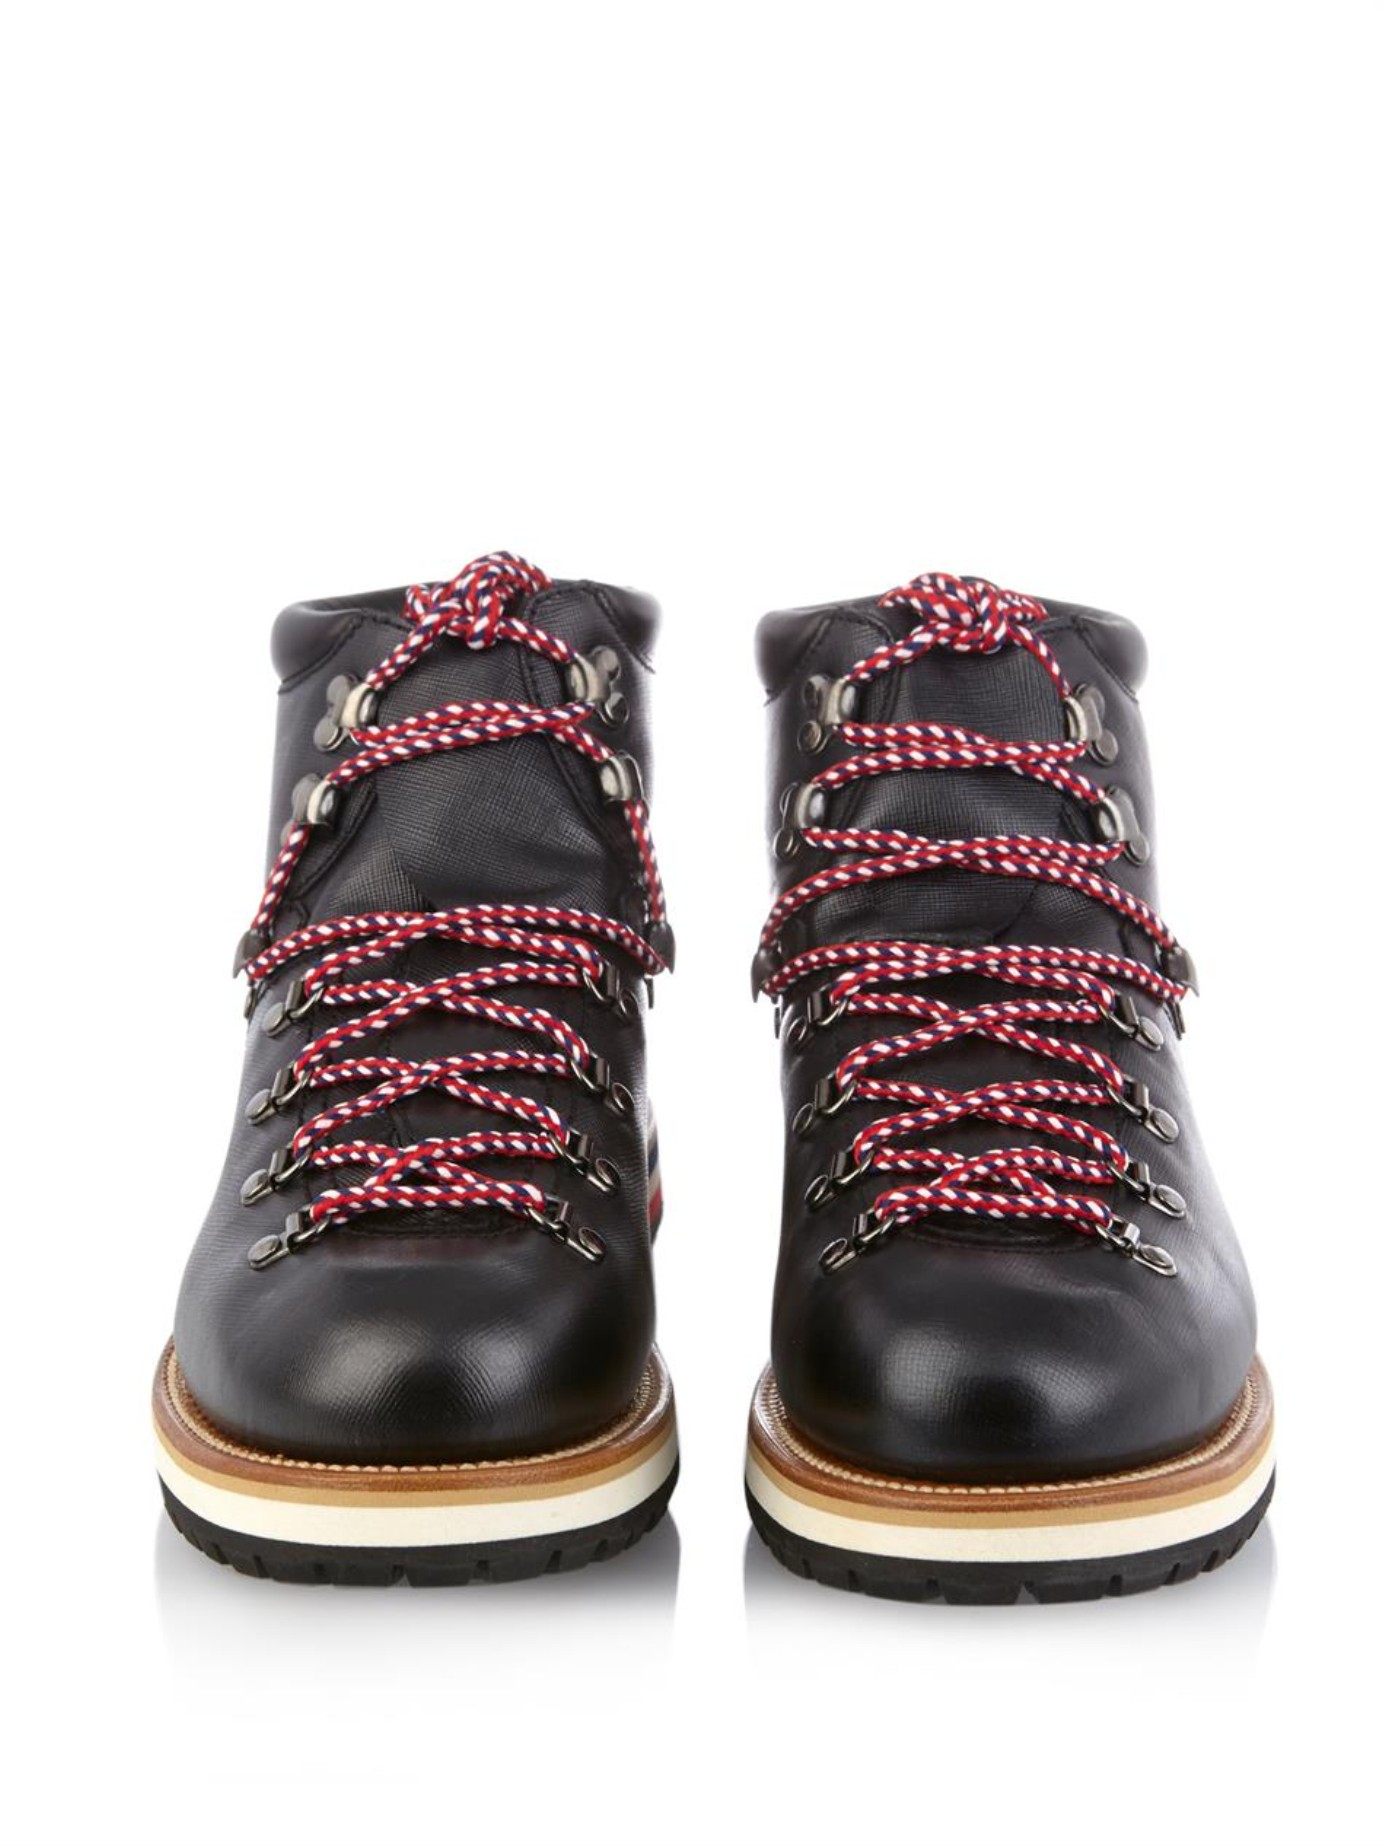 Moncler lace-up boots 2015 cheap online outlet Inexpensive largest supplier discount really cbdJZz6s6